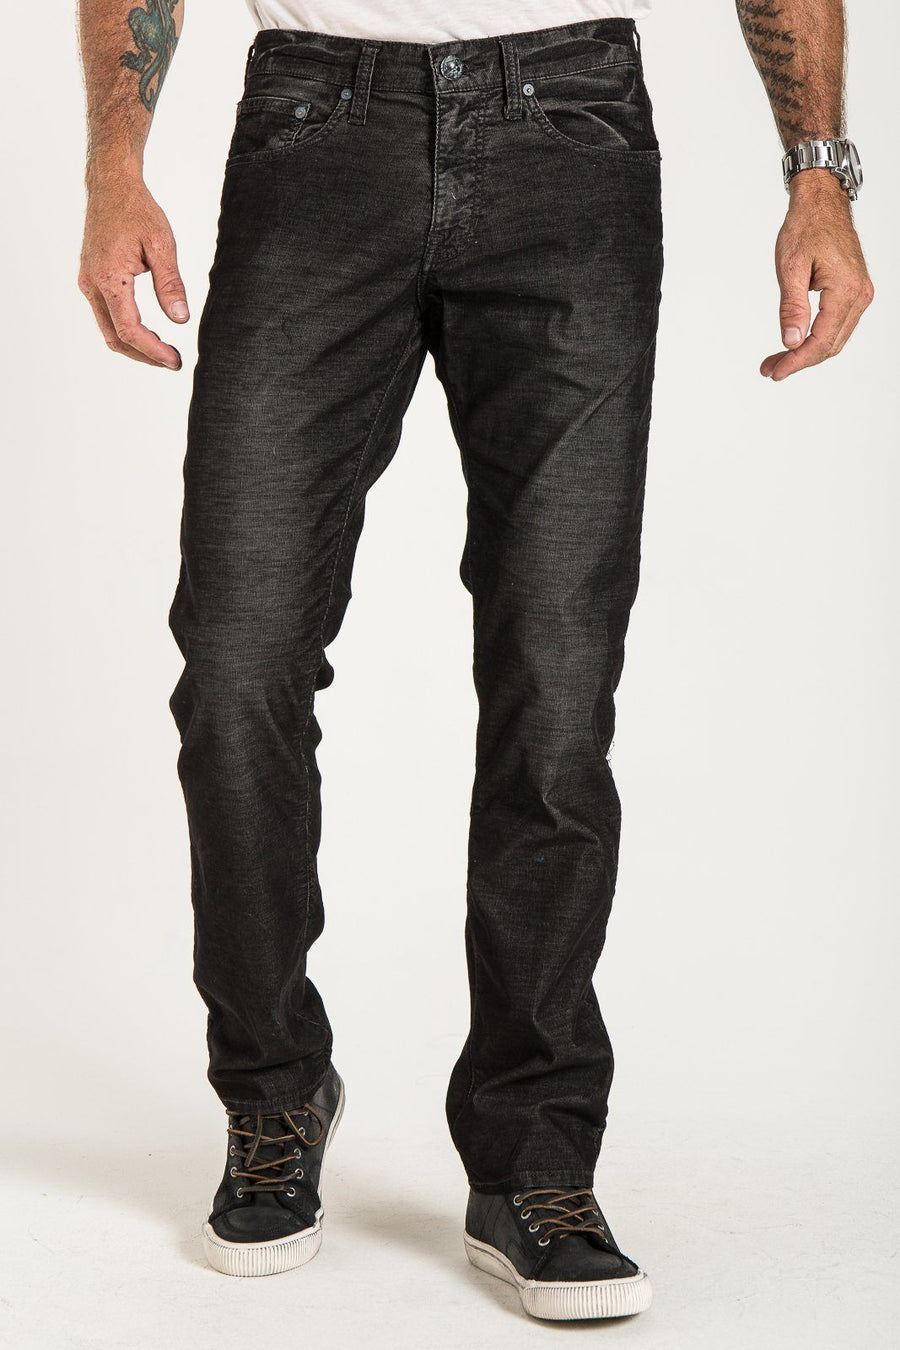 BARFLY SLIM IN BLACK WASHED RUSTIC CORDUROY JEANS